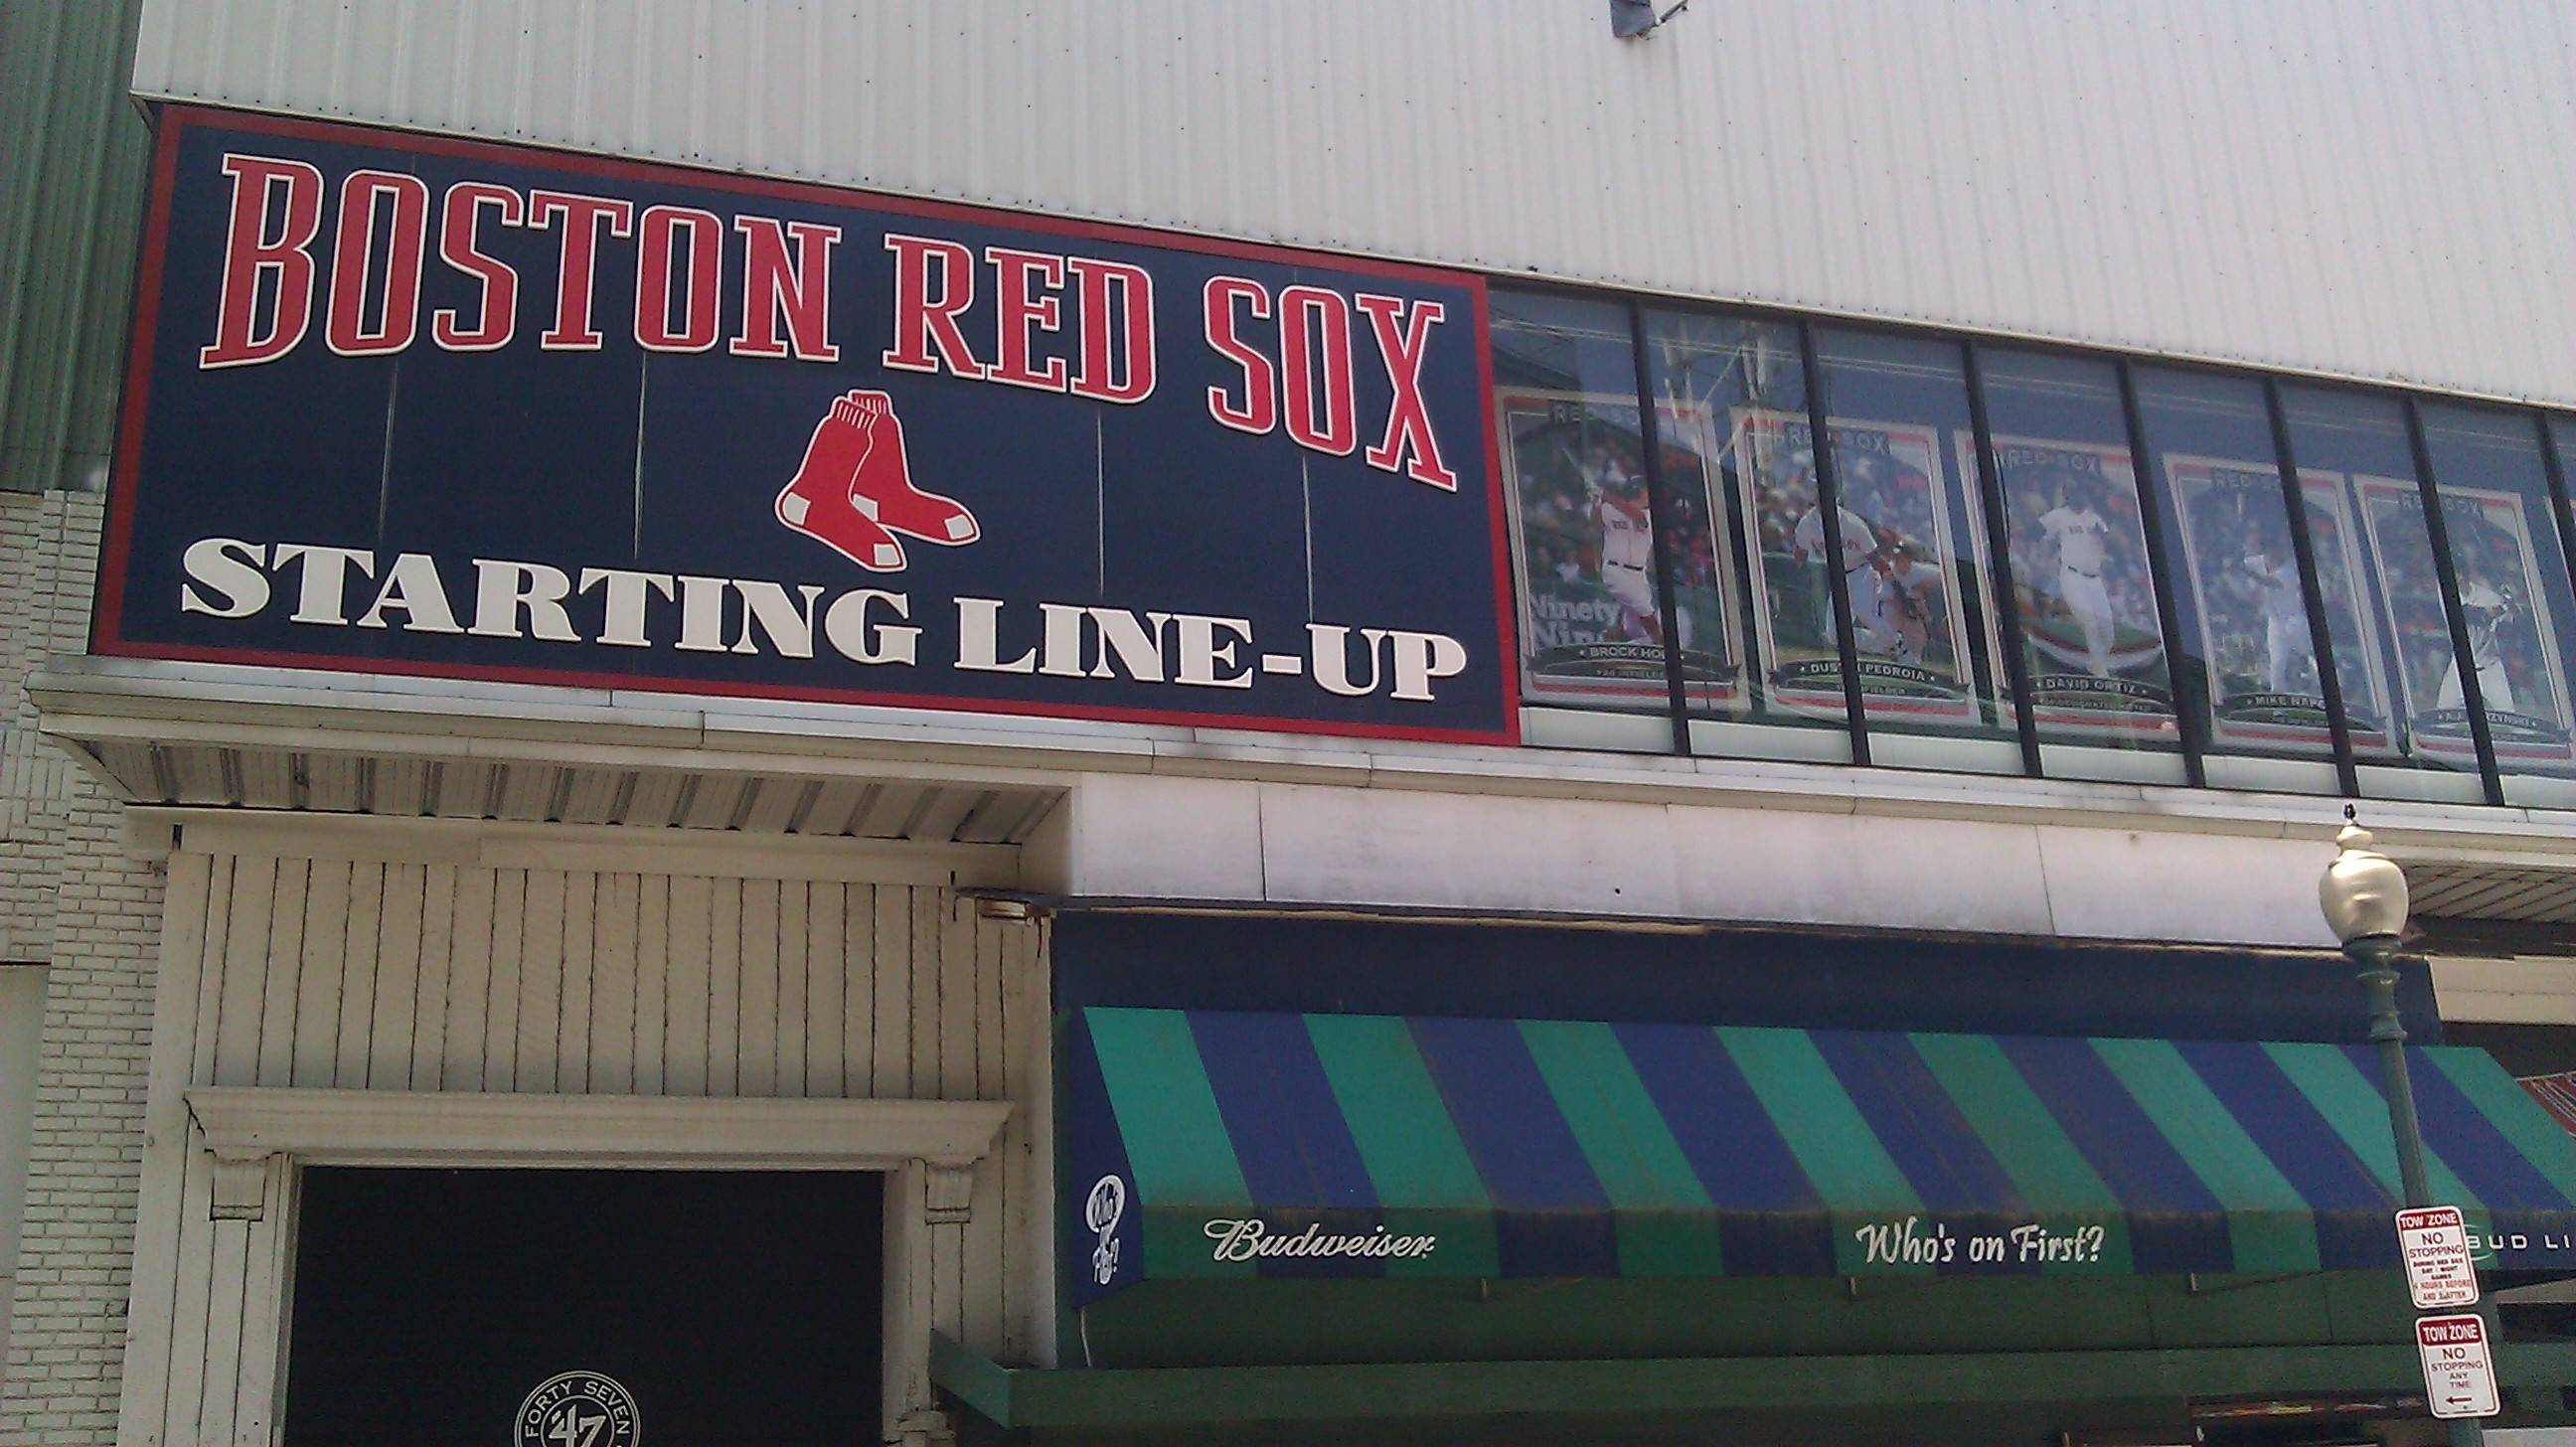 Posting huge baseball card images of the starting lineups outside Fenway Park is one way the Red Sox cater to fans who gather around the 102-year-old ballpark before games.